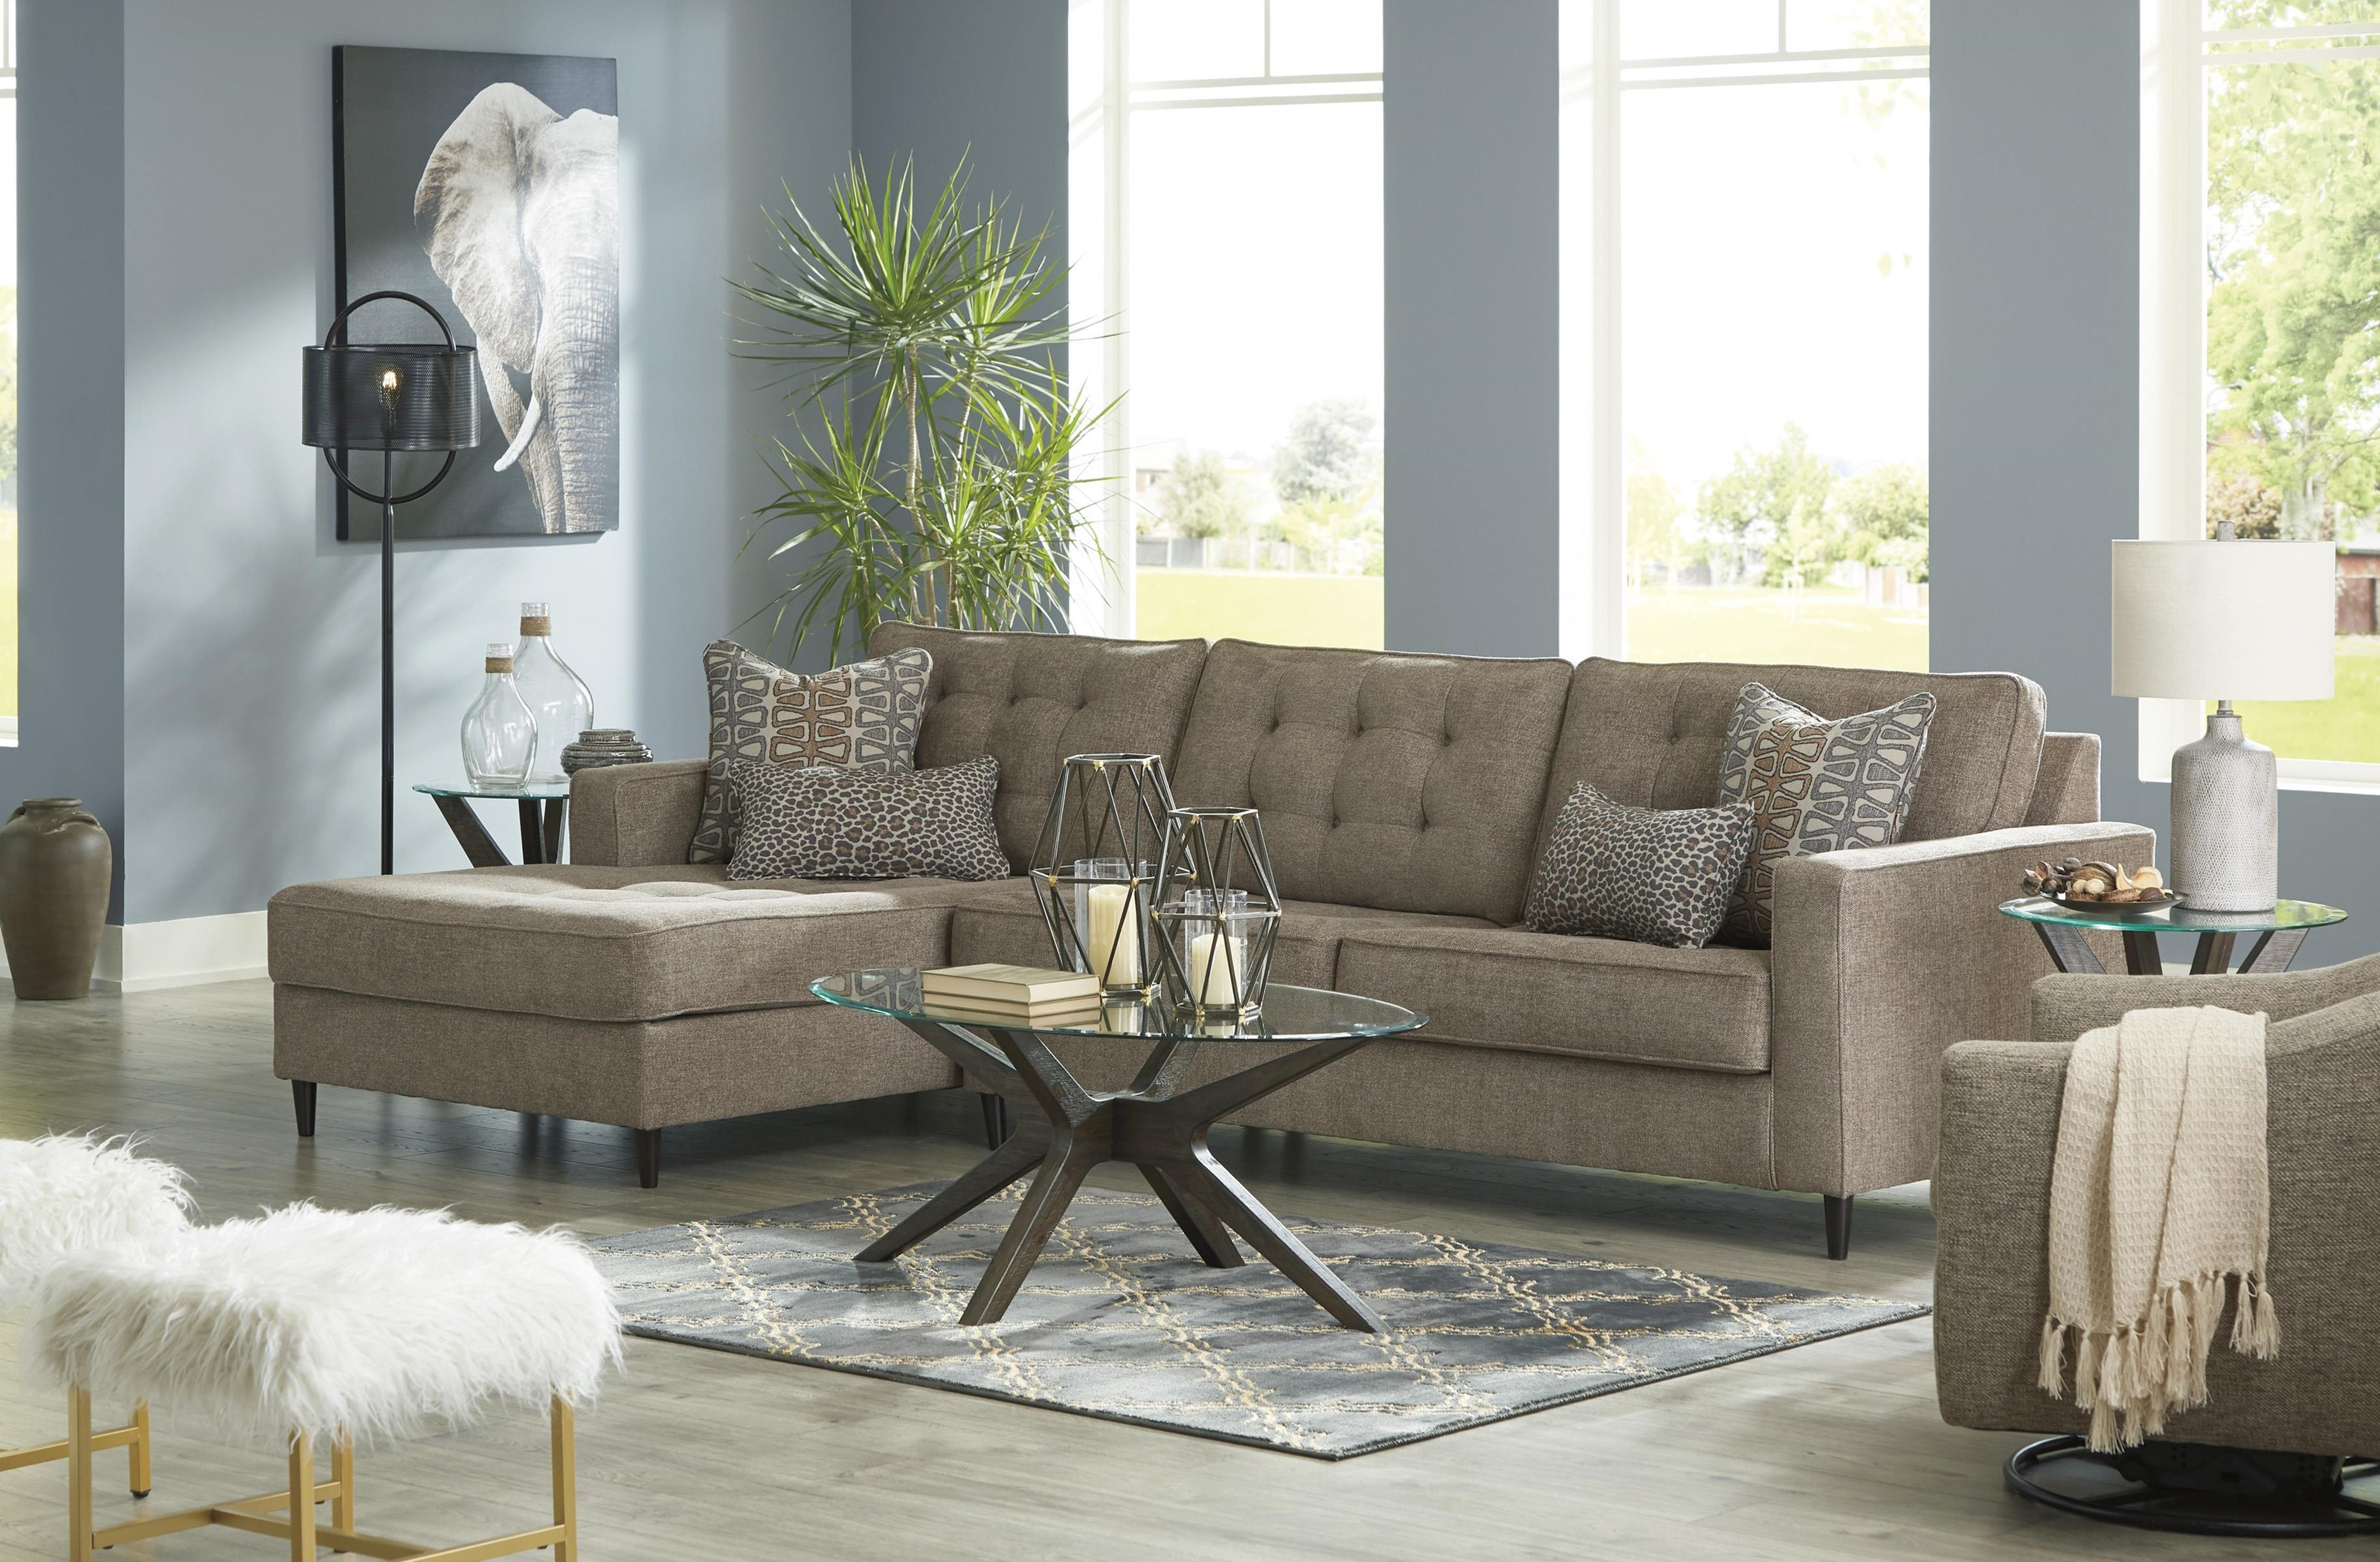 2 PC Sectional RAF Sofa and Swivel Glider